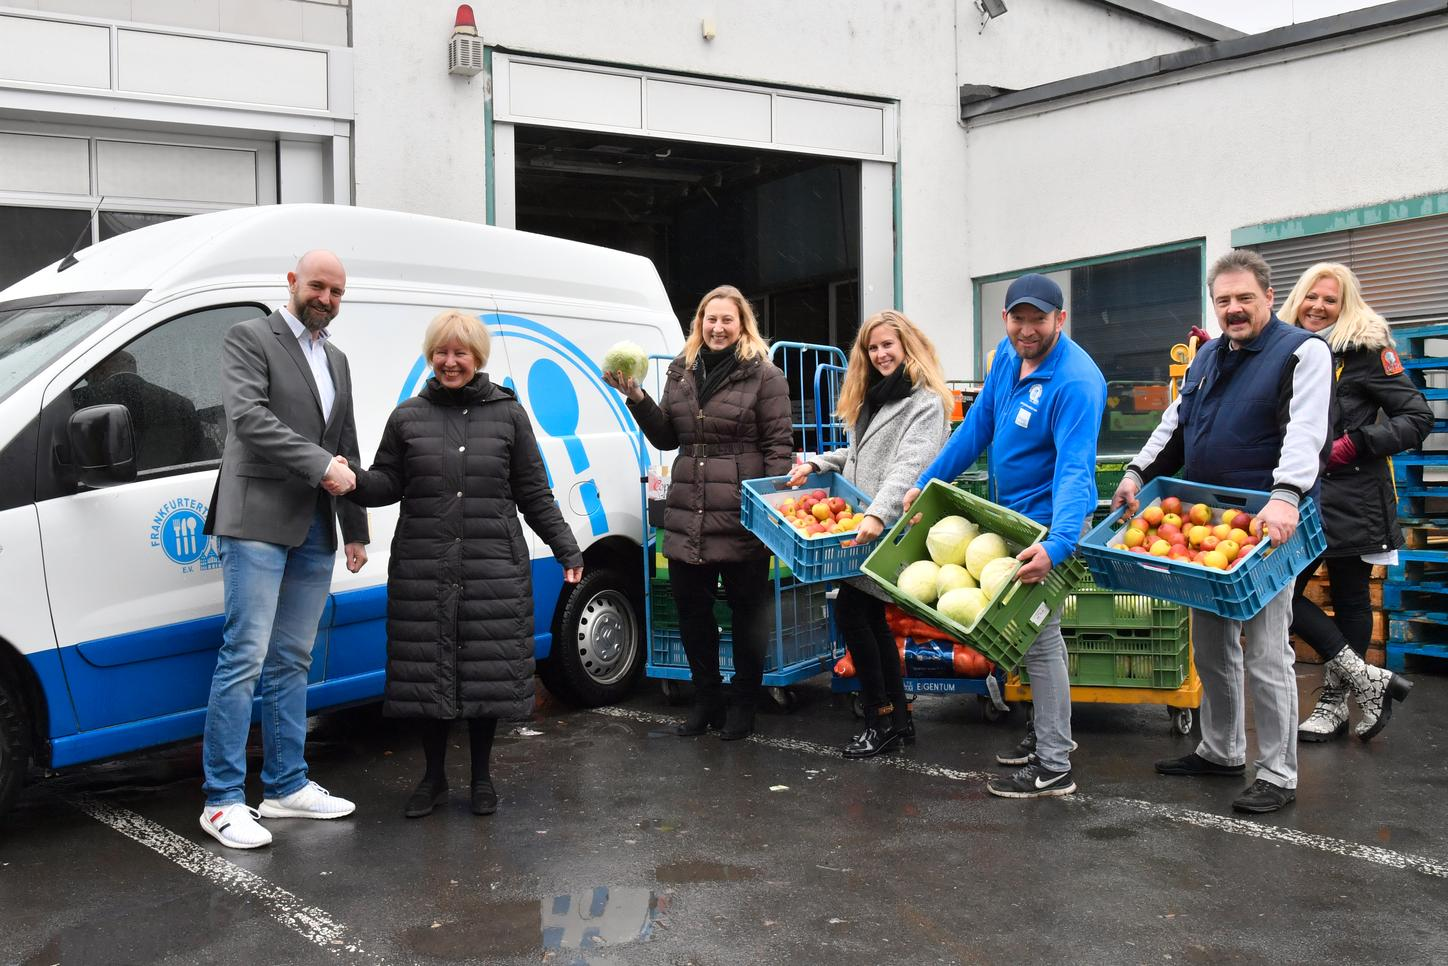 The picture shows how food from Allendorf is handed over to the Tafel in Frankfurt.